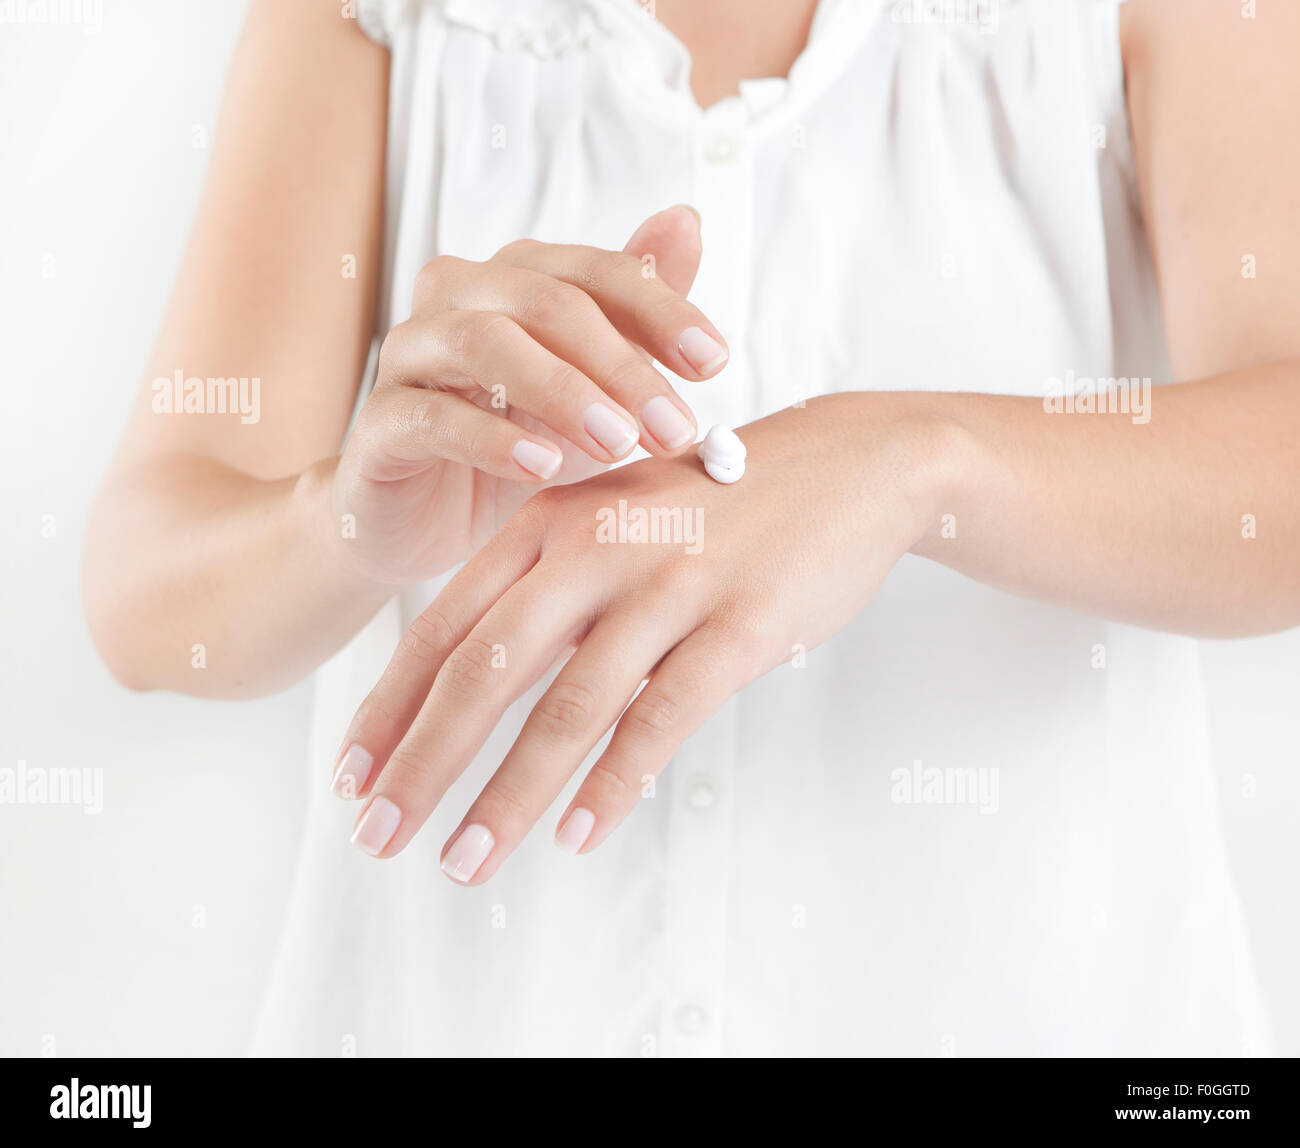 a woman with cream on hands, a face - Stock Image